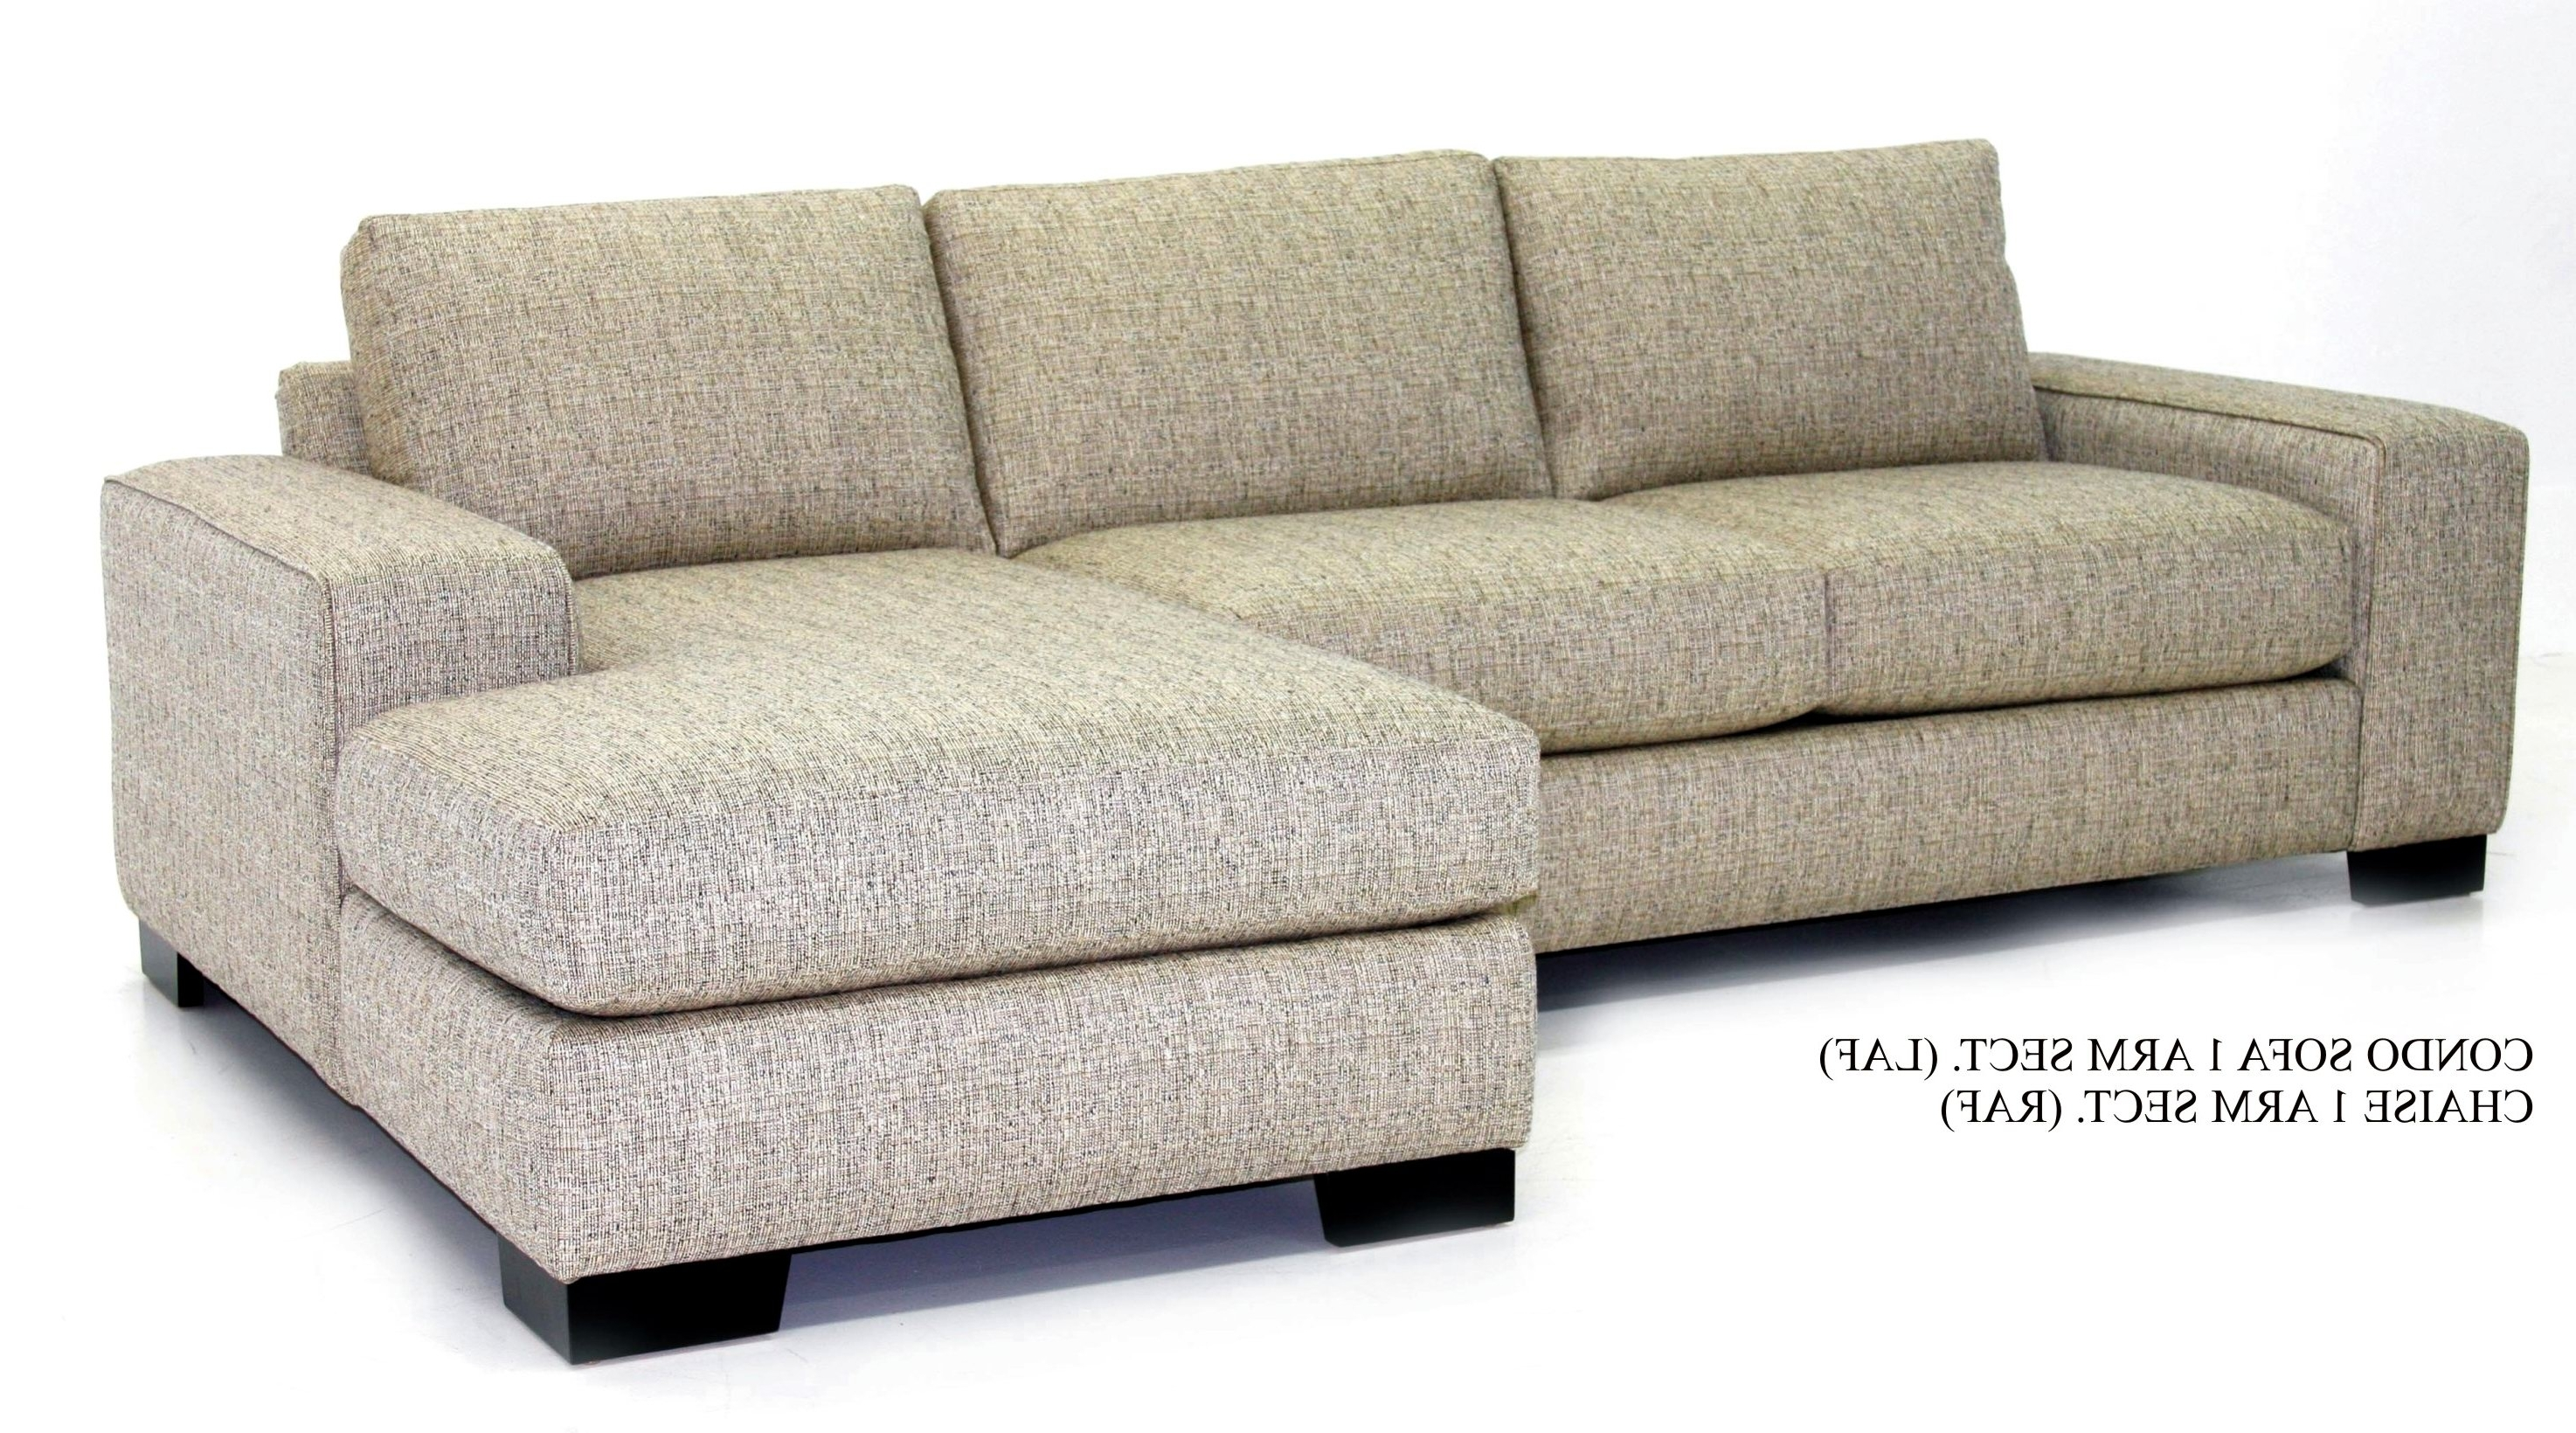 Modena Sofa And Sectional Sizes Regarding Best And Newest Sectional Sofas For Condos (View 6 of 20)